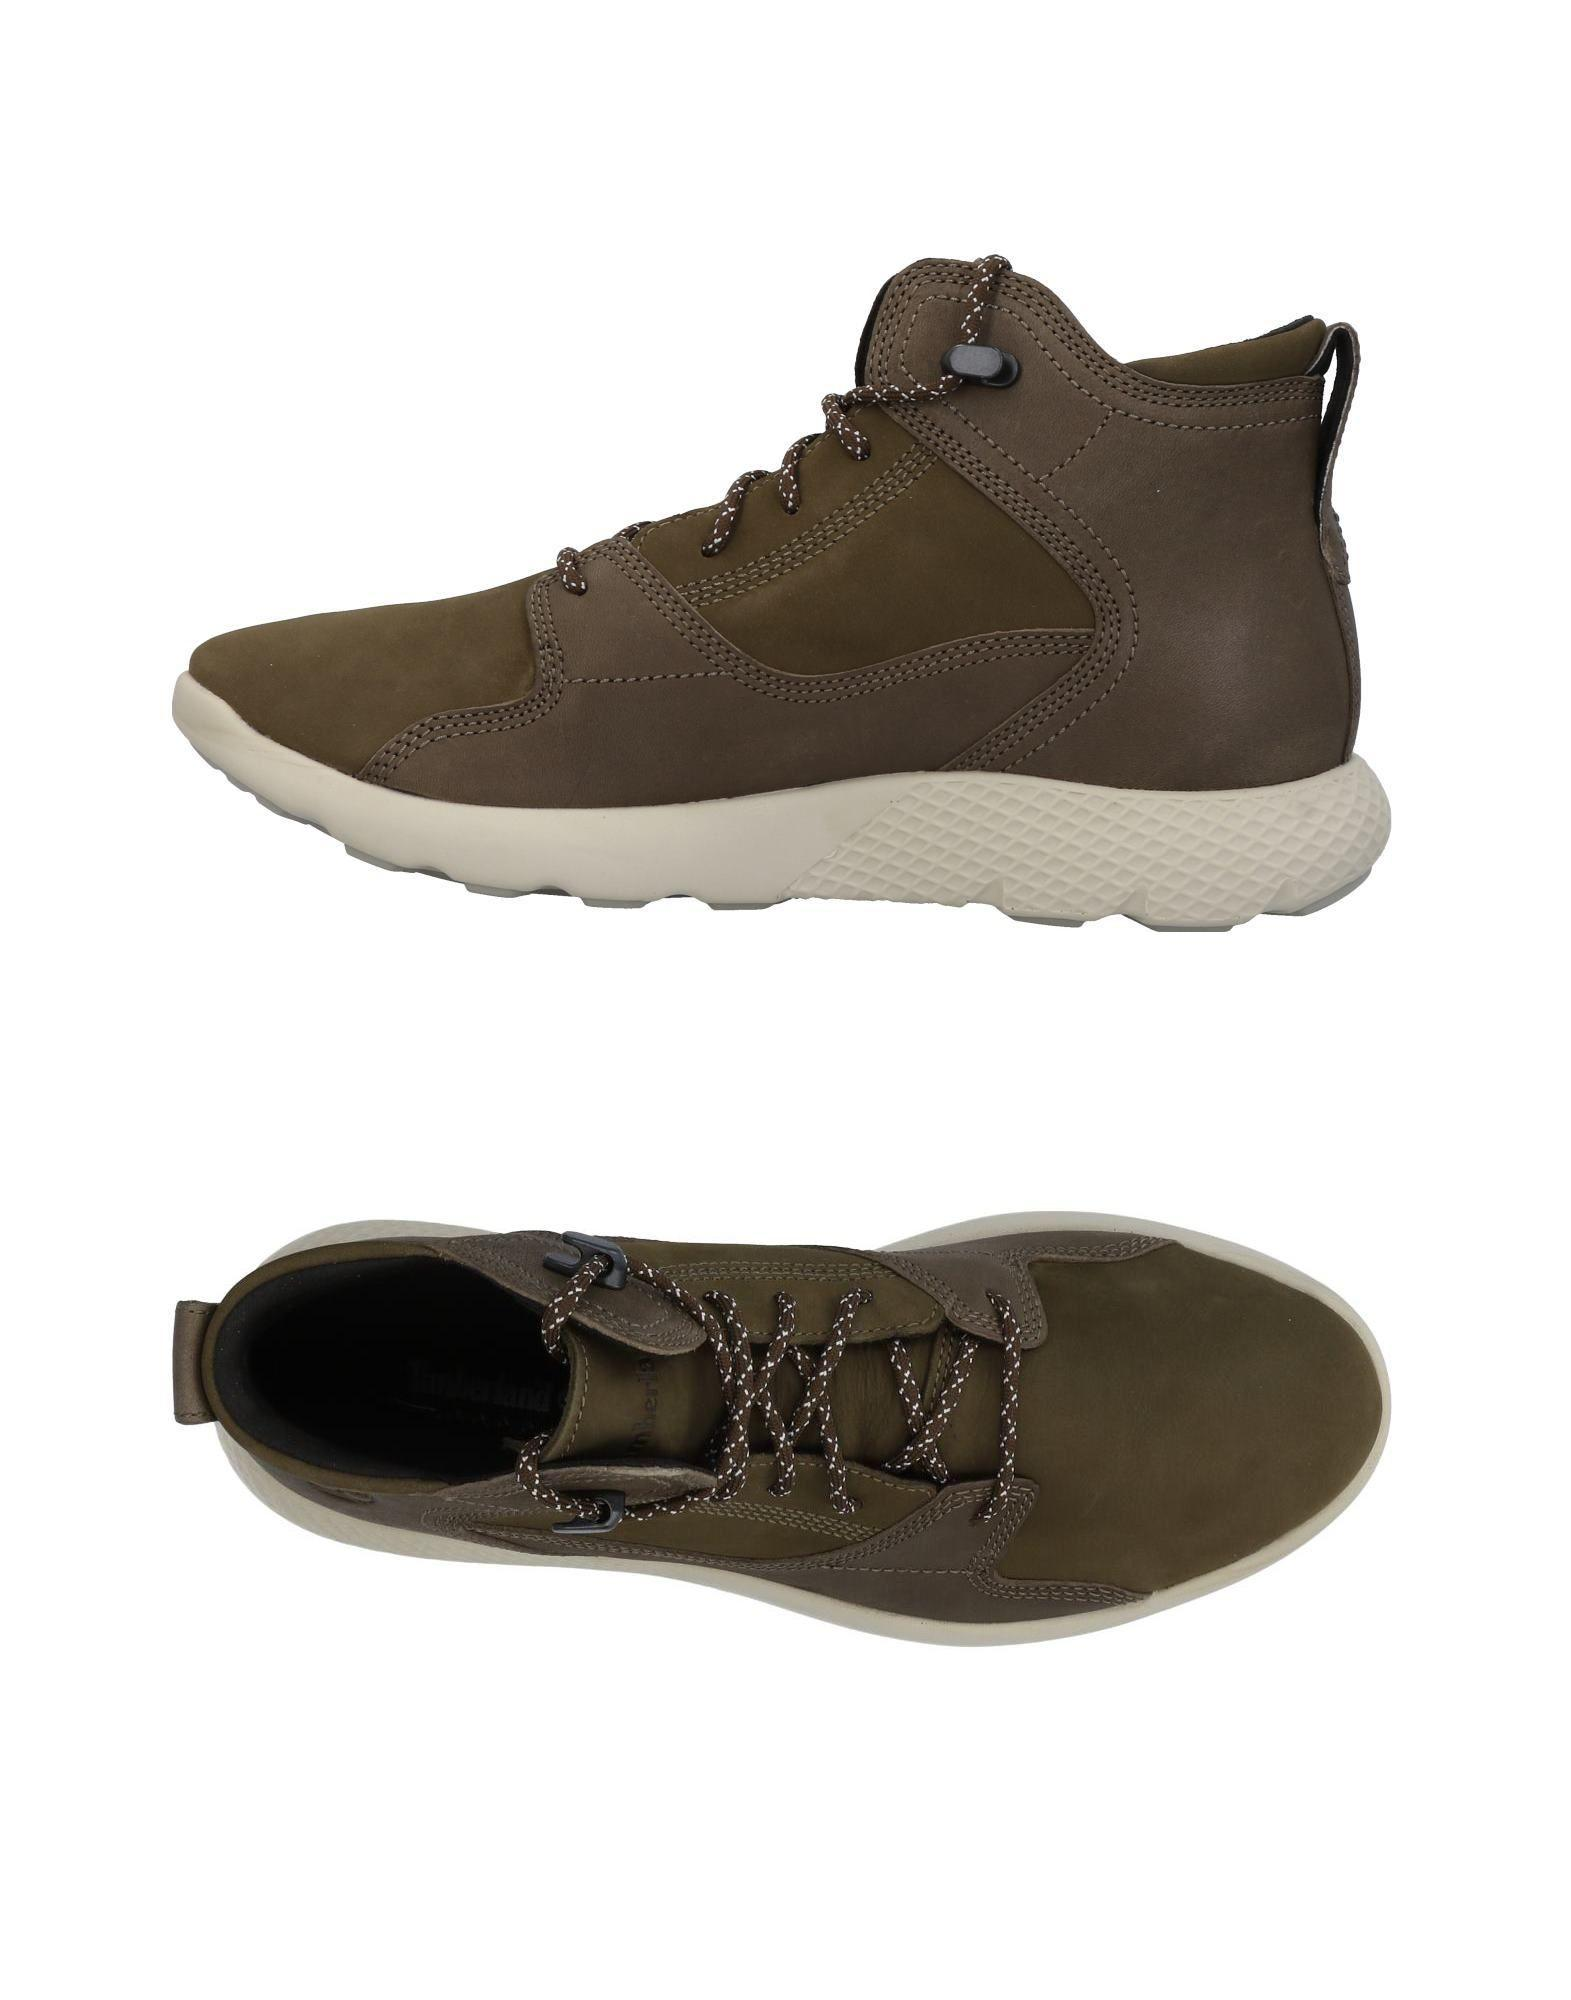 Timberland Sneakers In Military Green